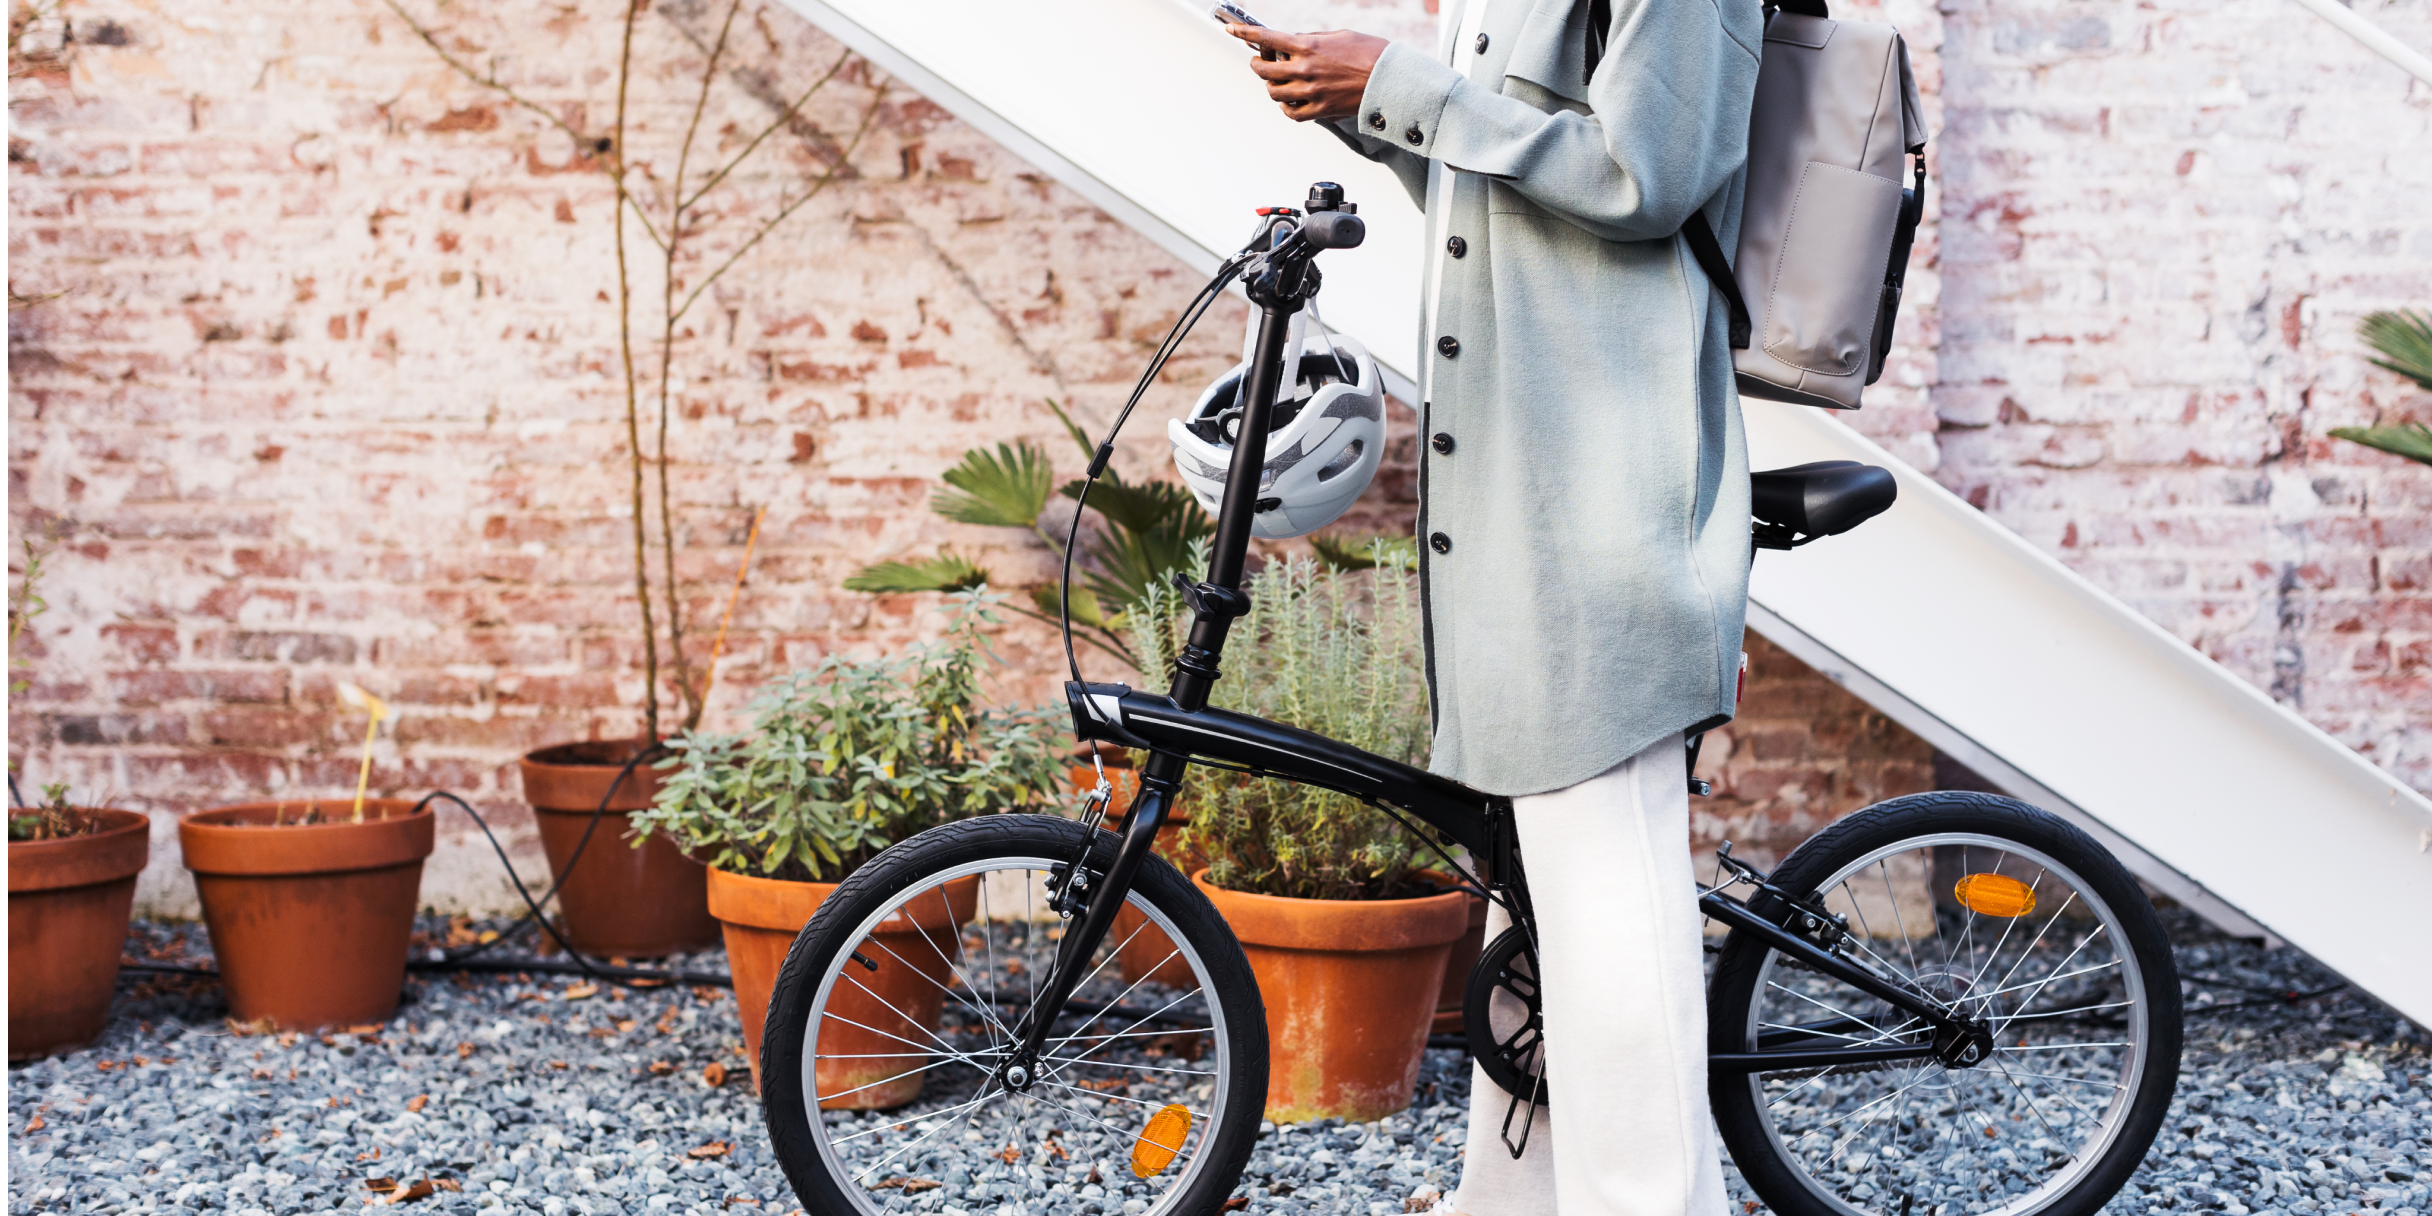 A person in a gray coat stands near a brick wall and straddles a black bicycle